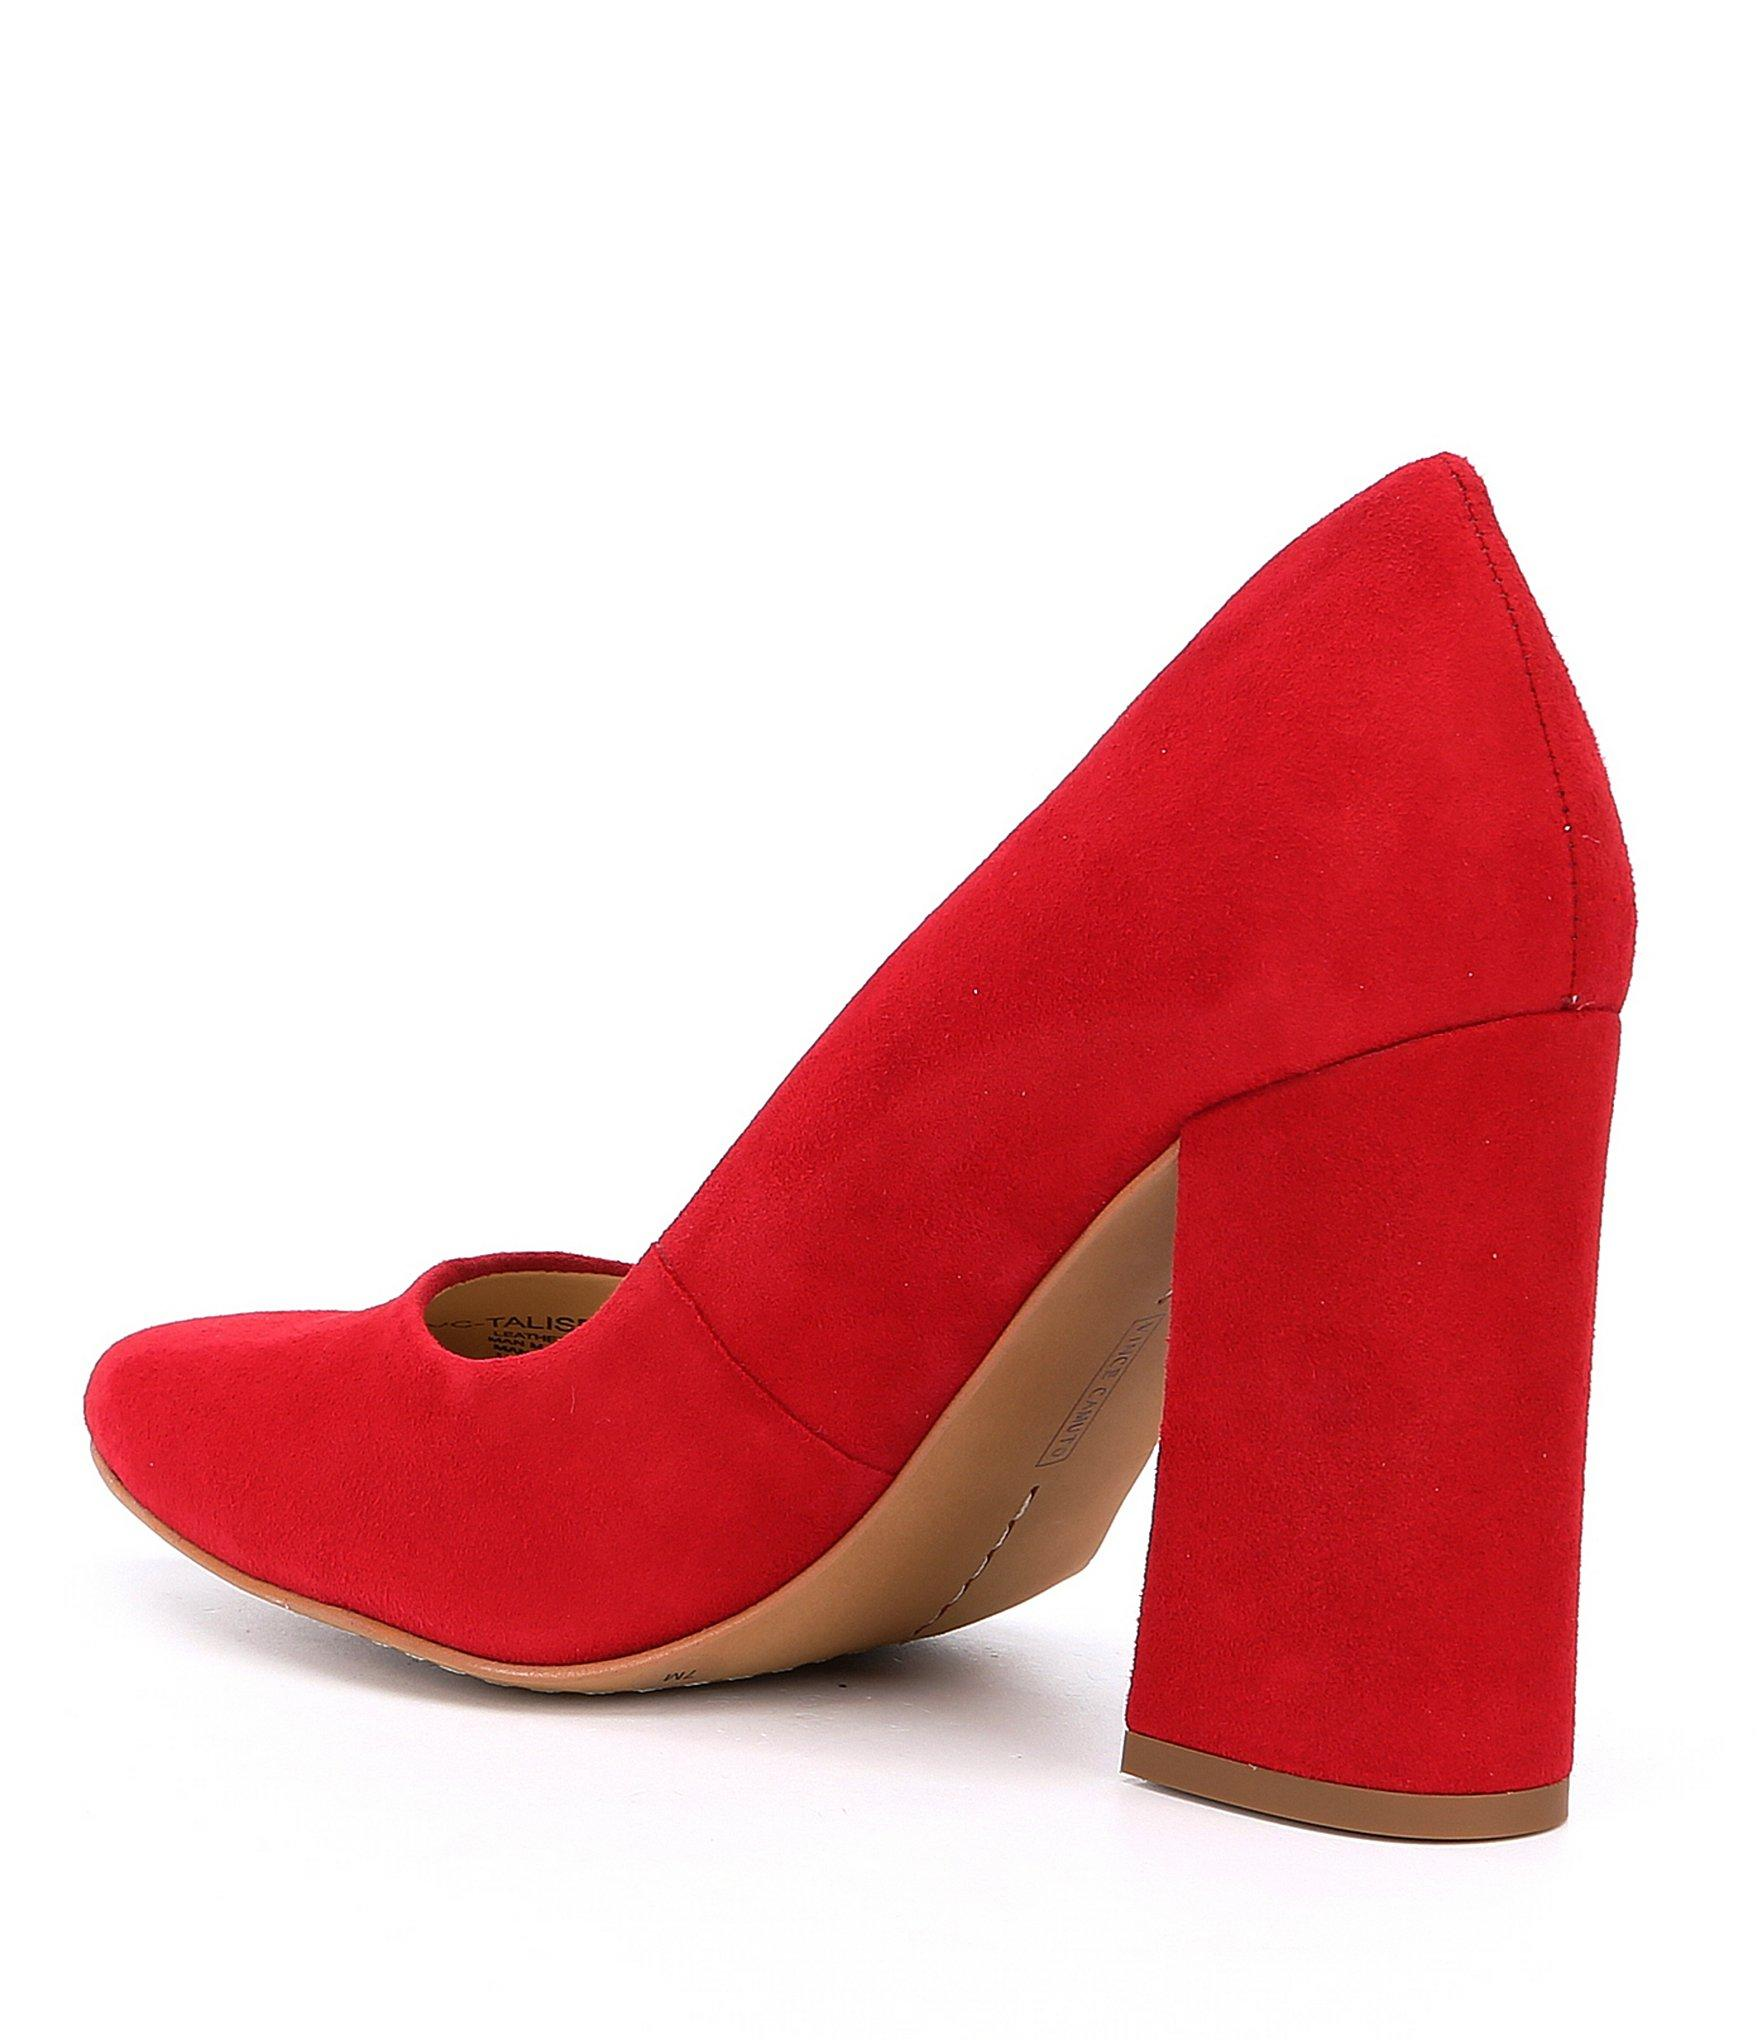 f08bcde1b Lyst - Vince Camuto Talise Nubuck Block Heel Pumps in Red